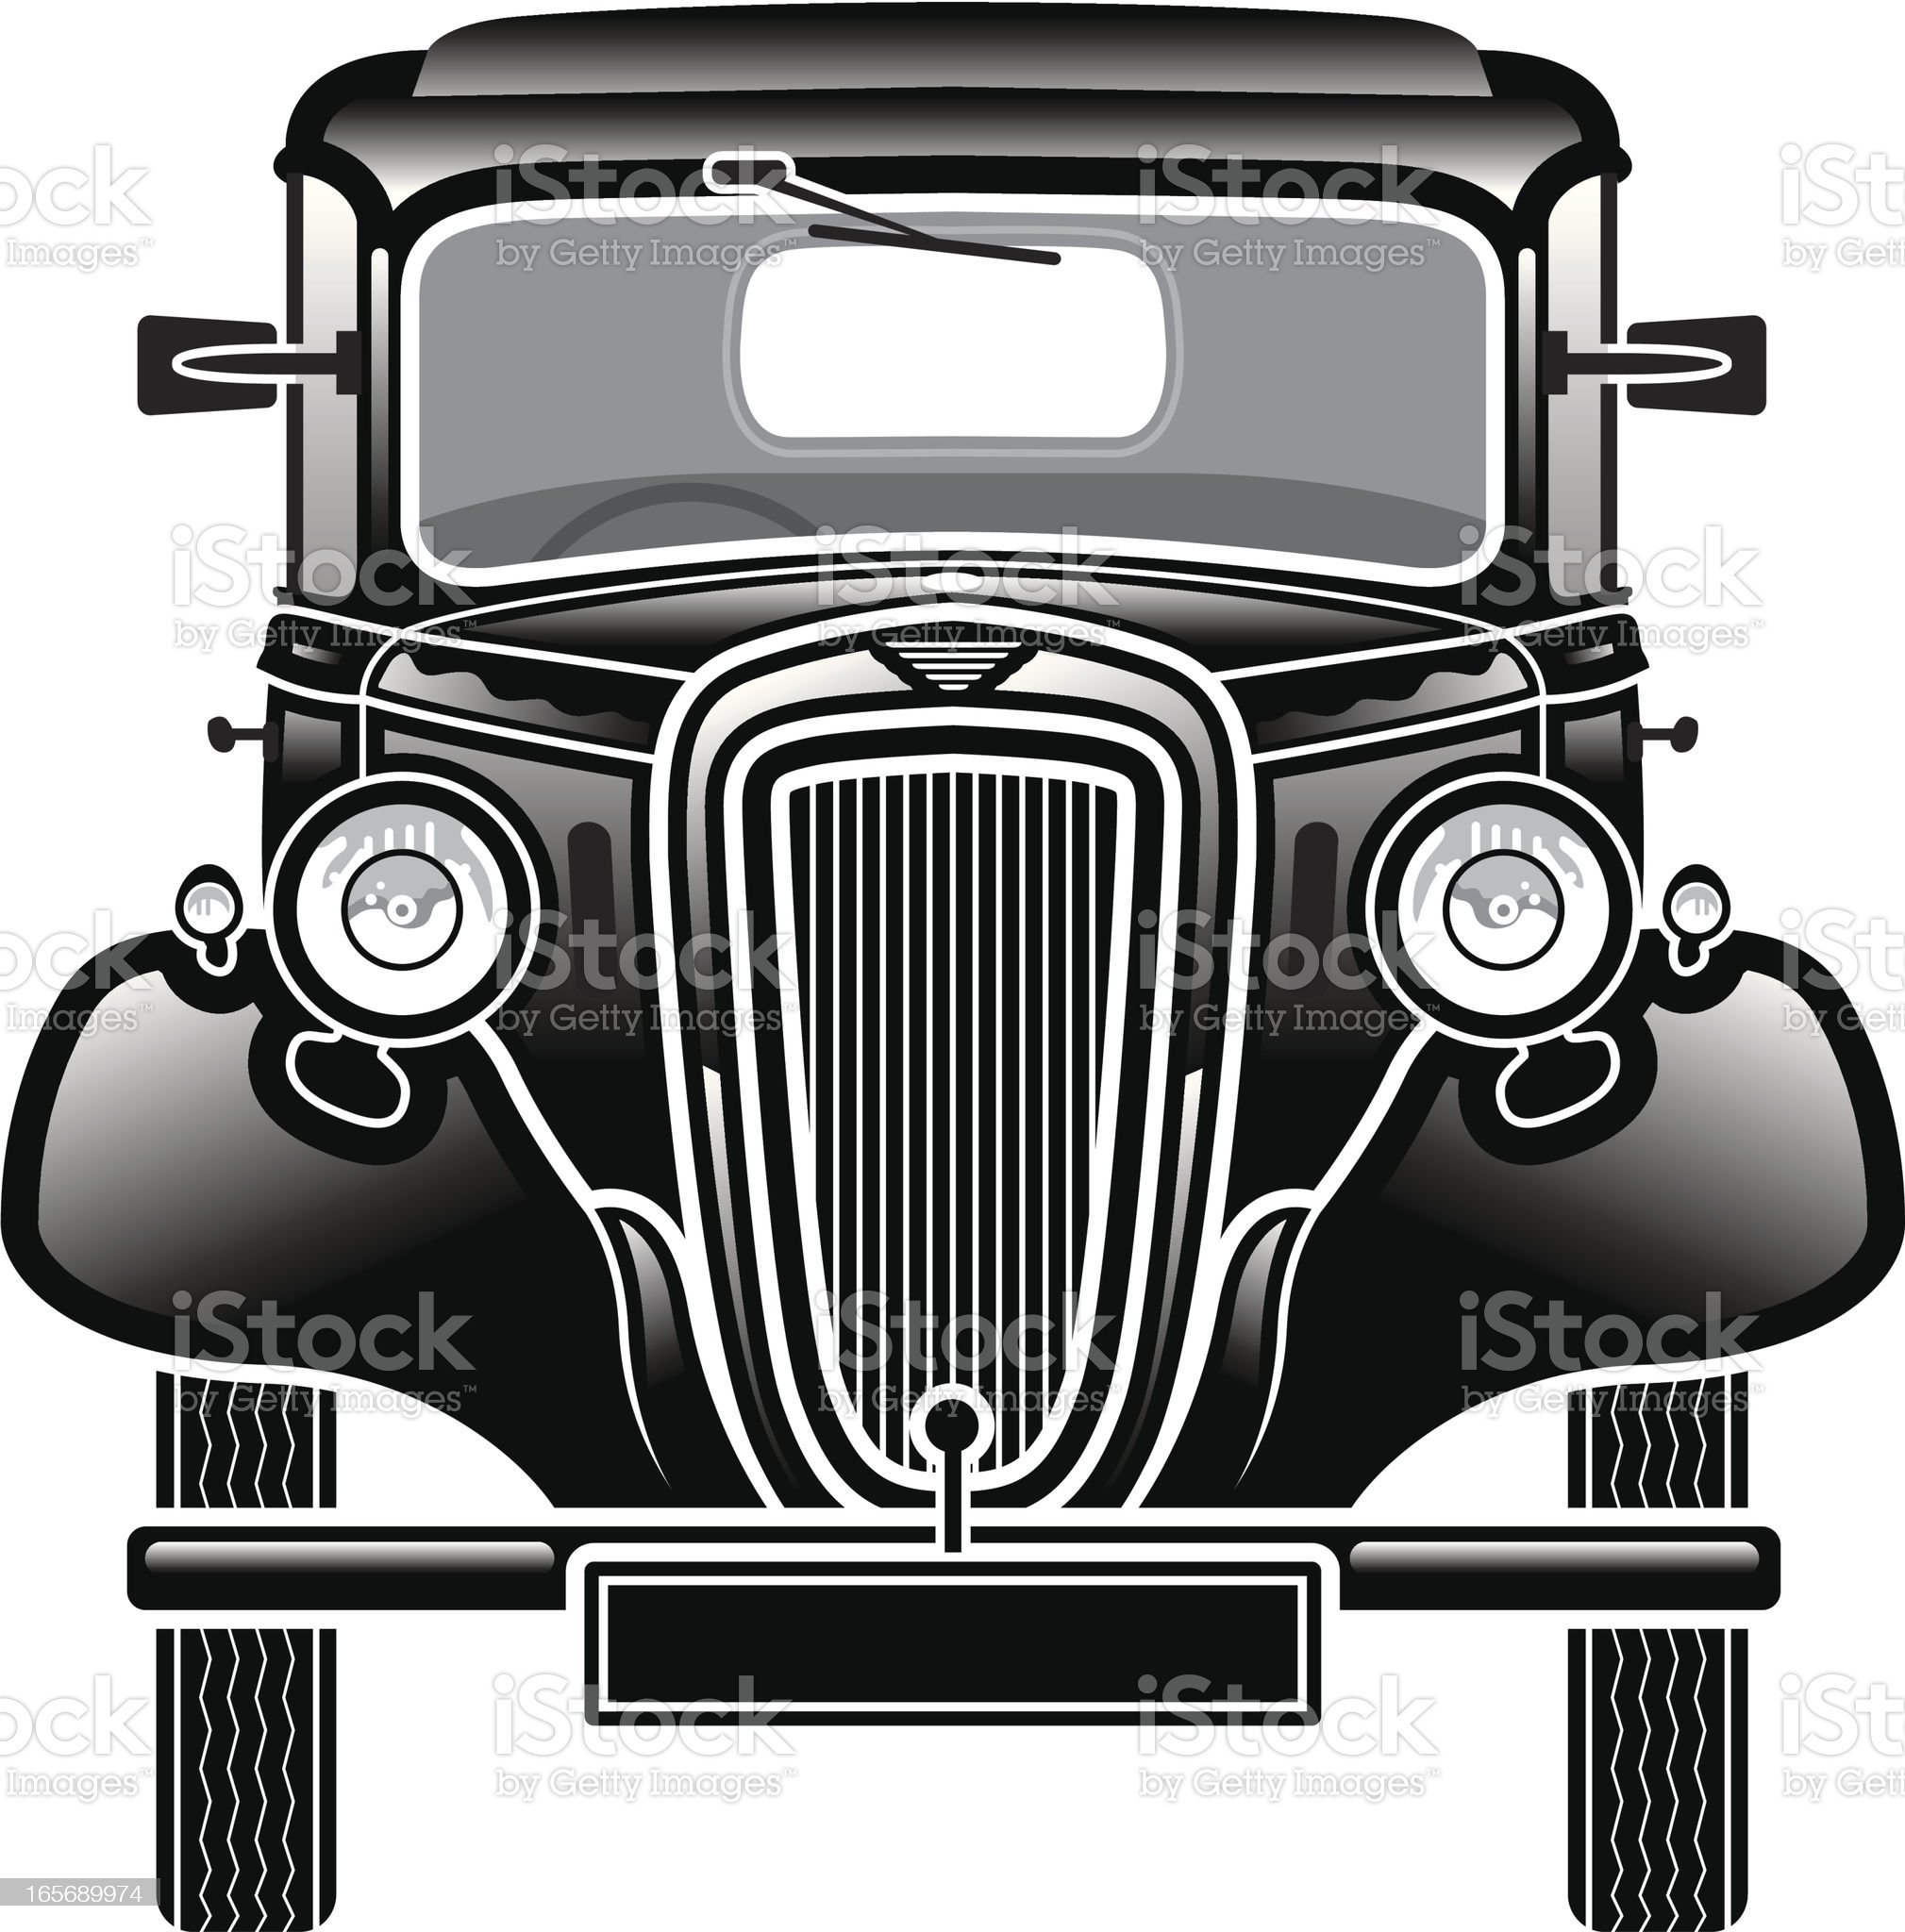 Old car front. royalty-free stock vector art